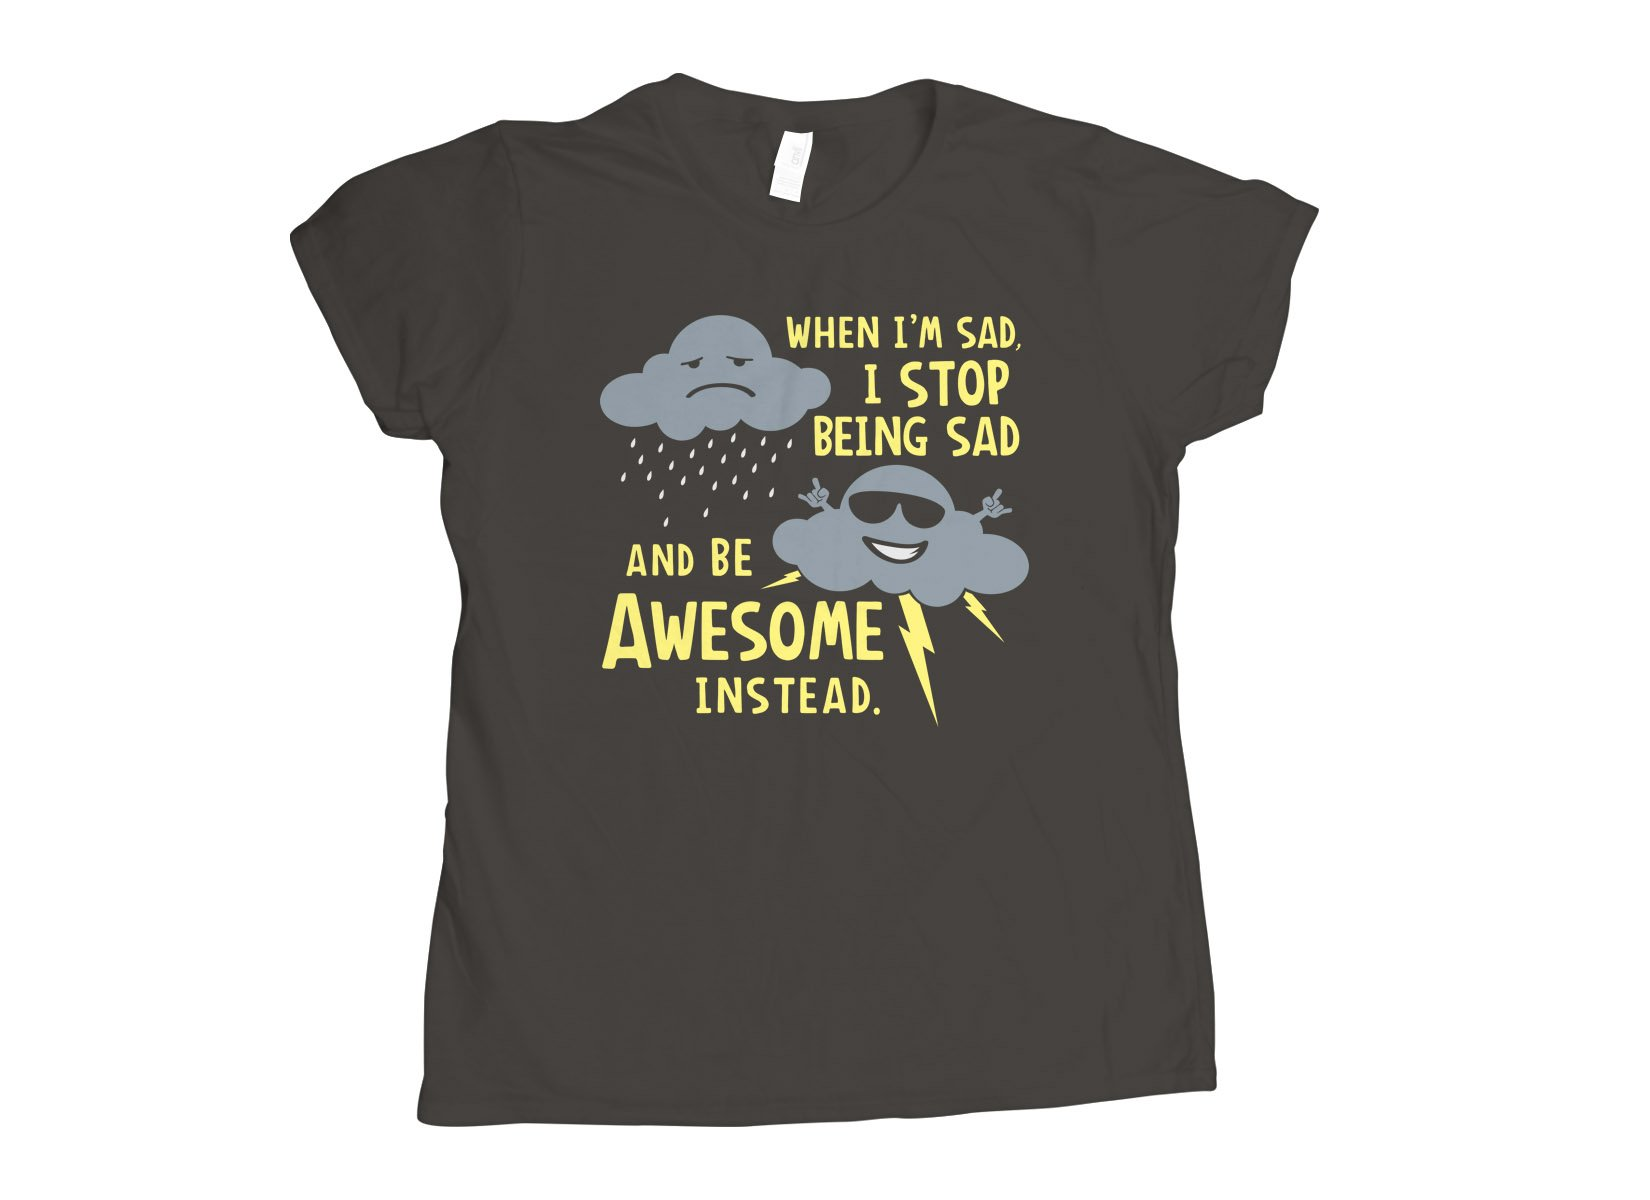 When I'm Sad, I Stop Being Sad And Be Awesome Instead on Womens T-Shirt